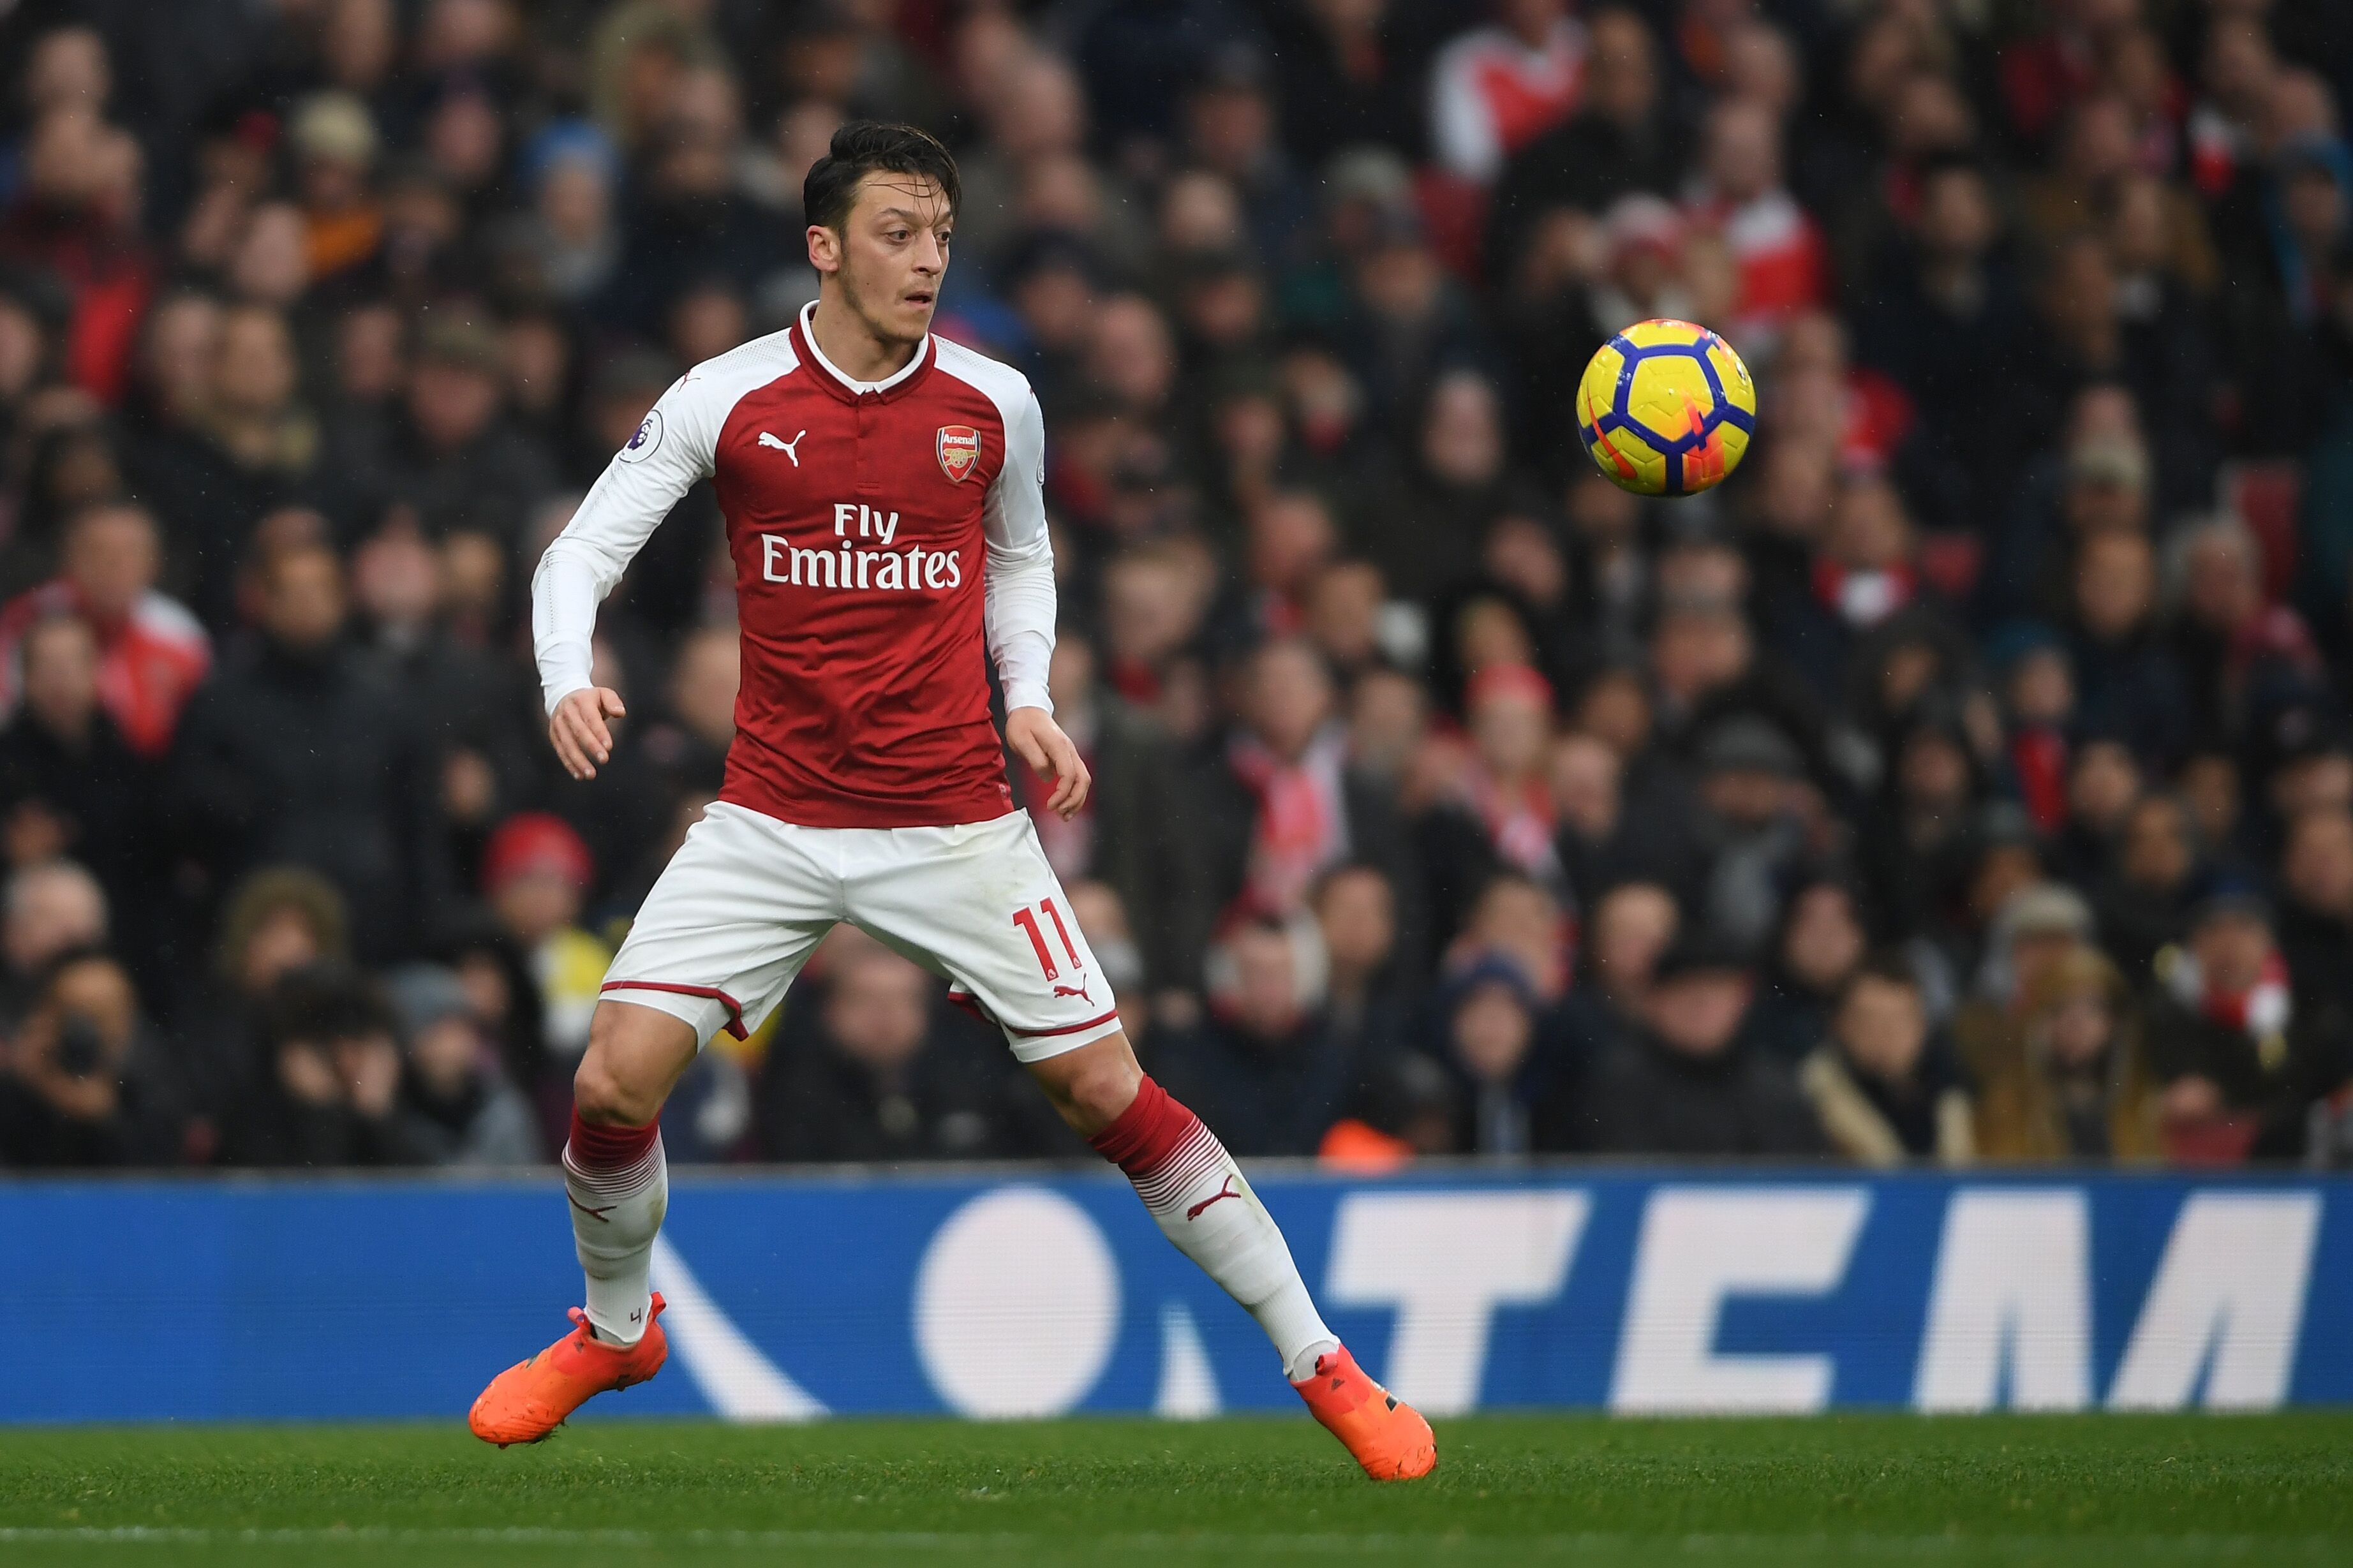 Arsenal s Mesut Ozil set to join Manchester United